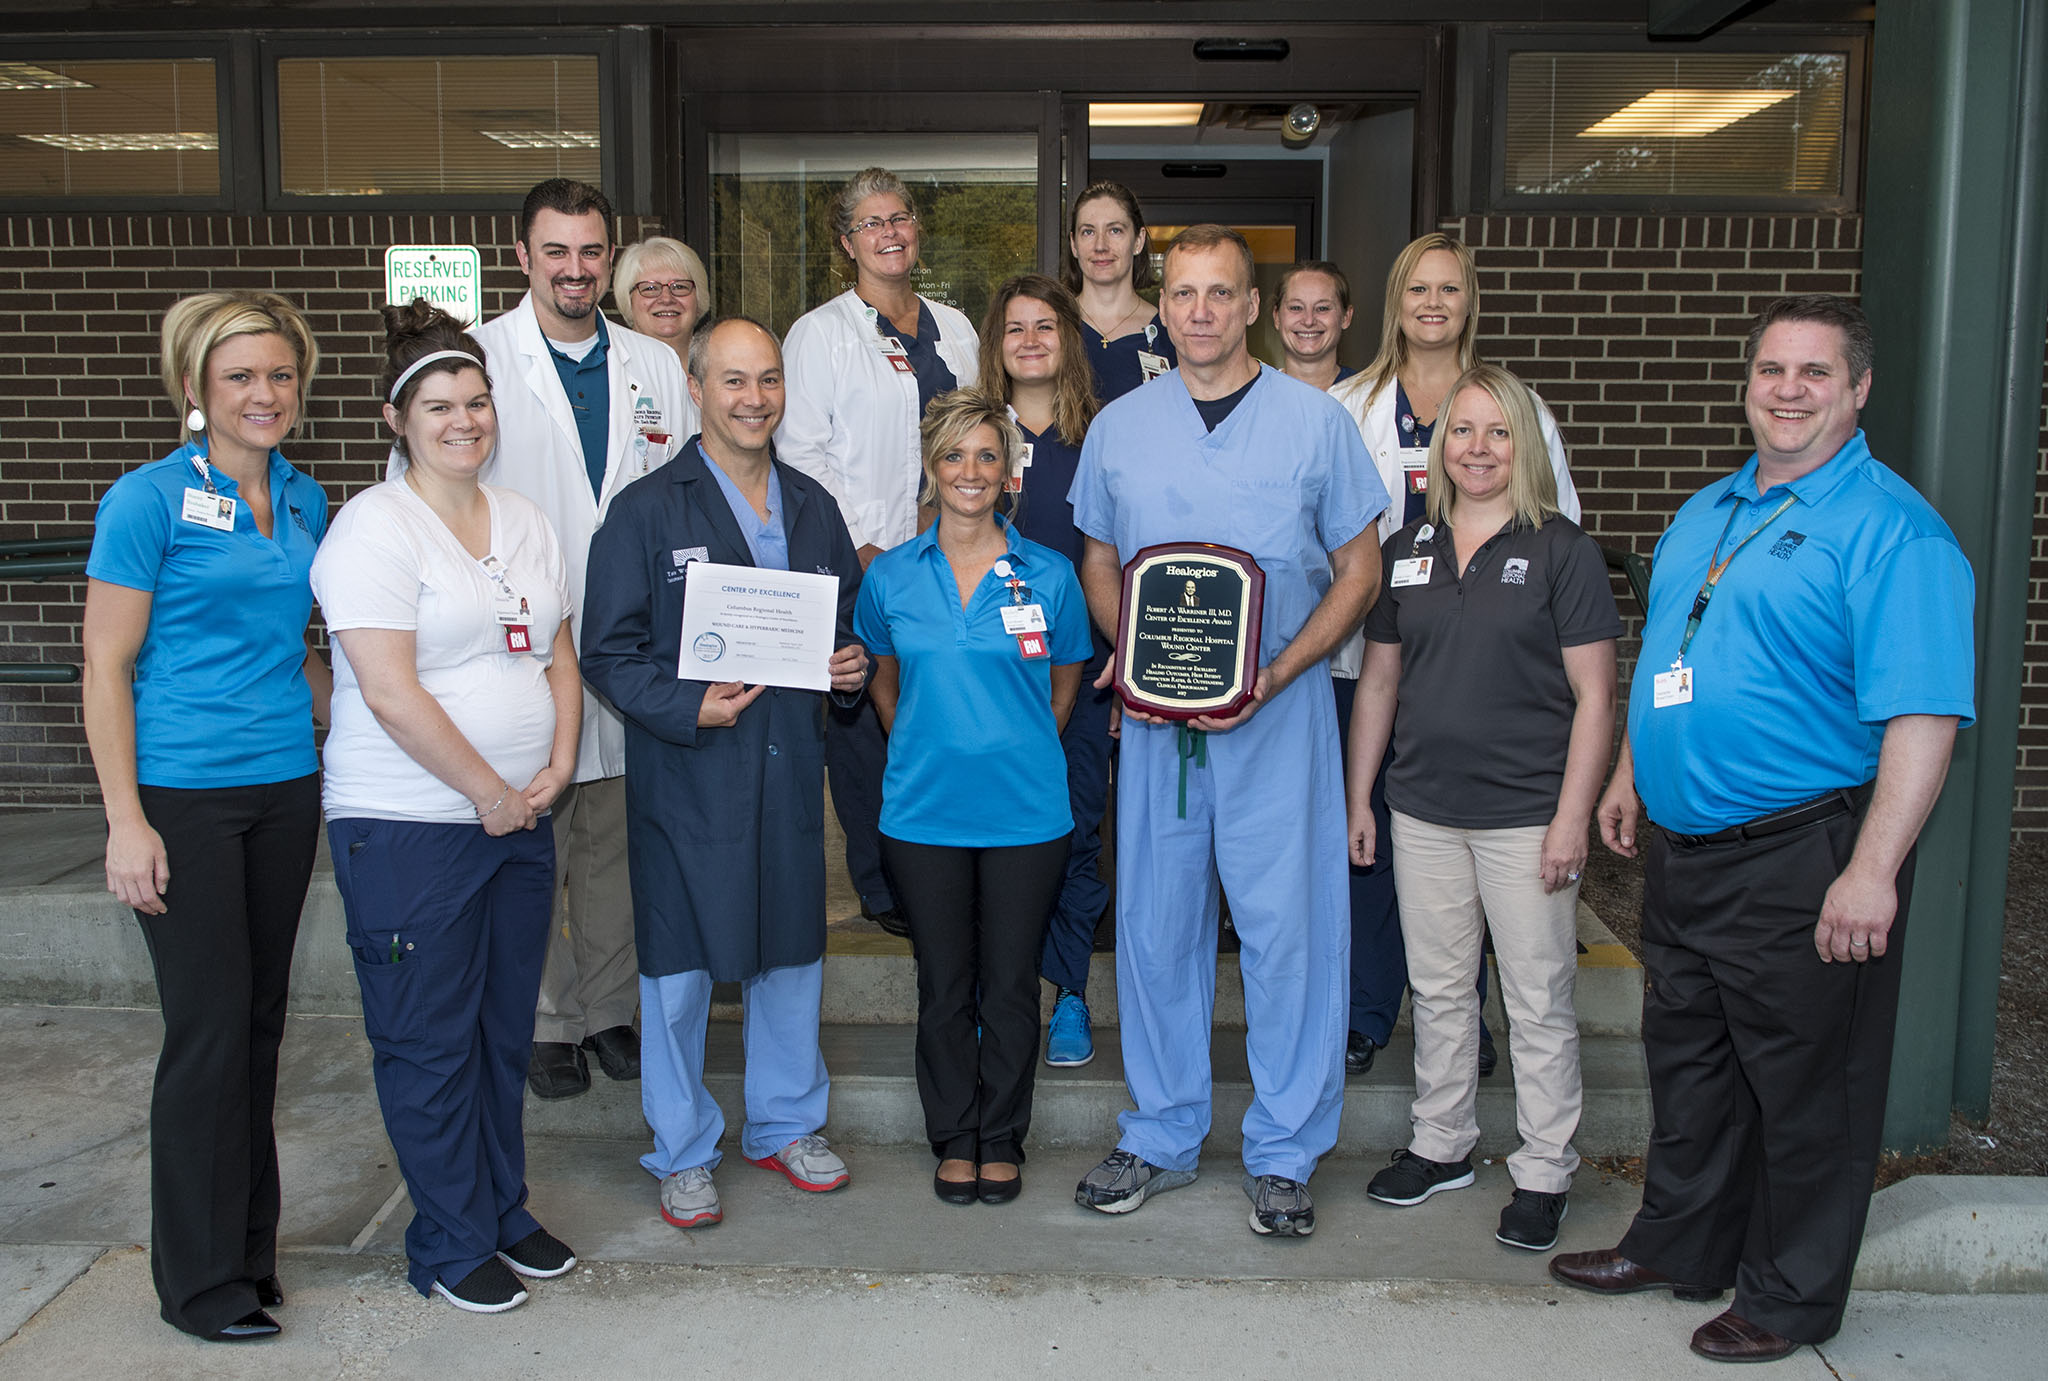 Wound Center staff group photo